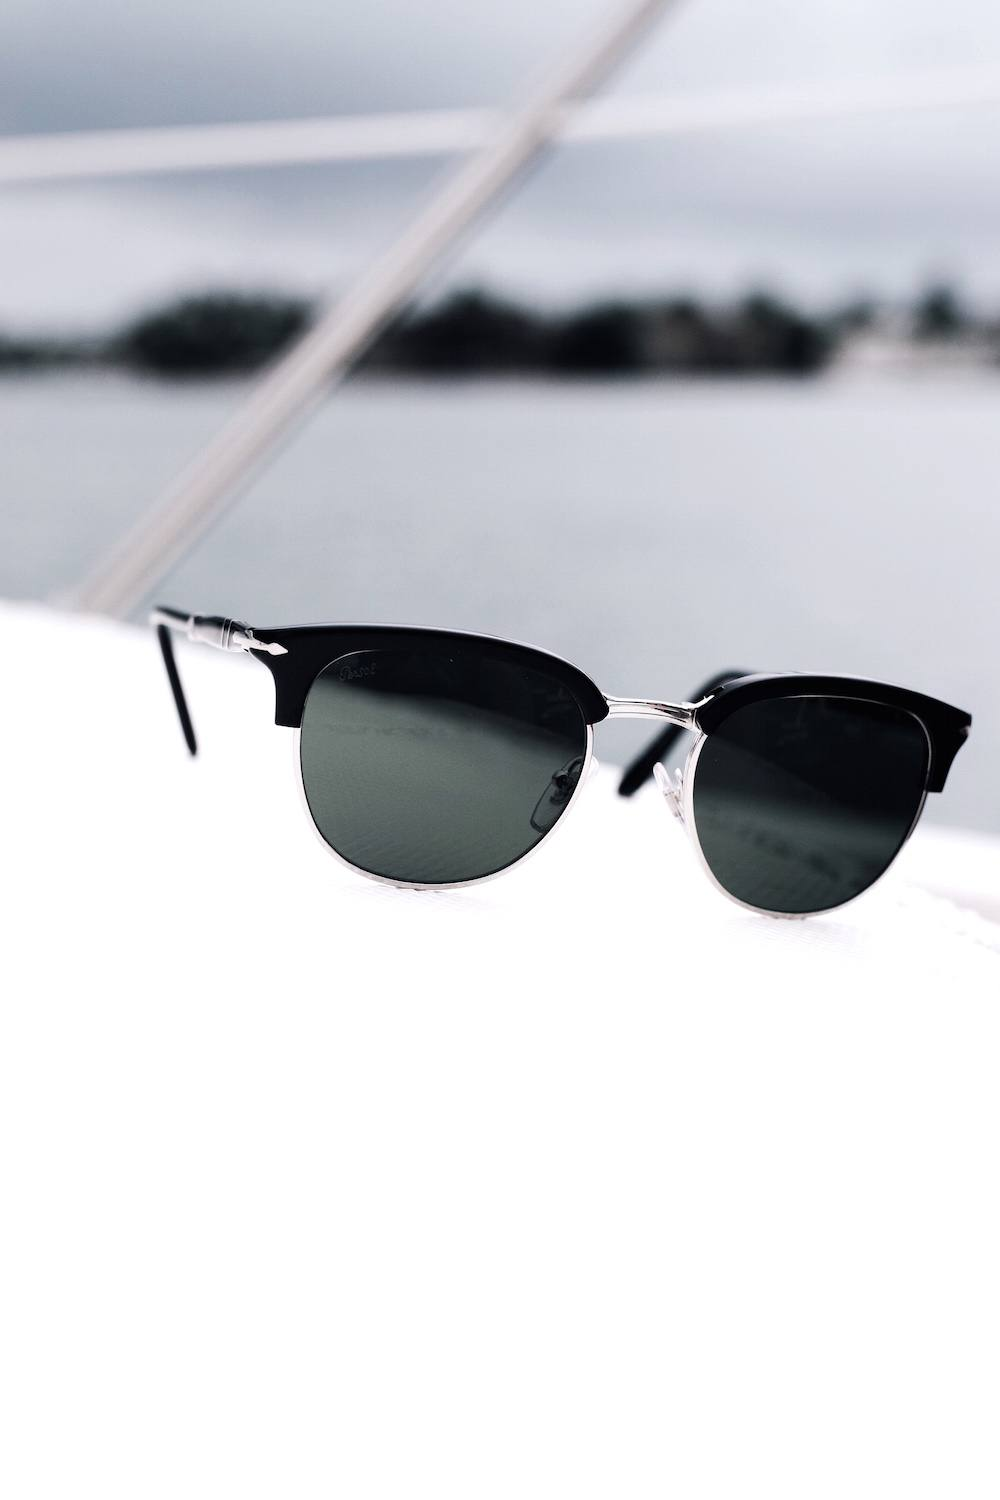 Persol Cellor Black and Grey